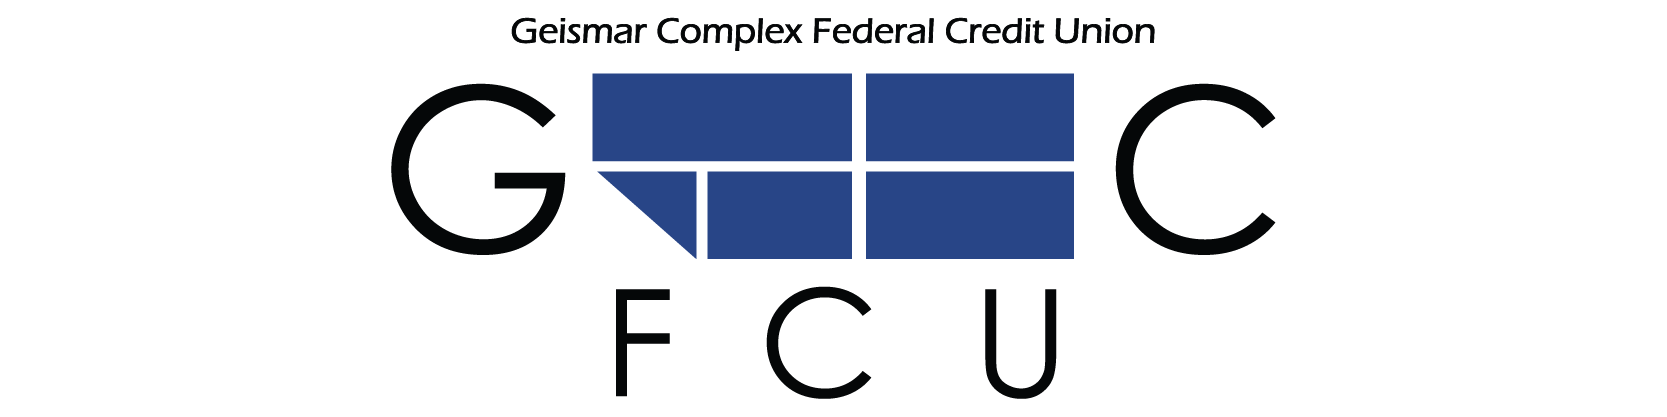 Geismar Complex Federal Credit Union Logo